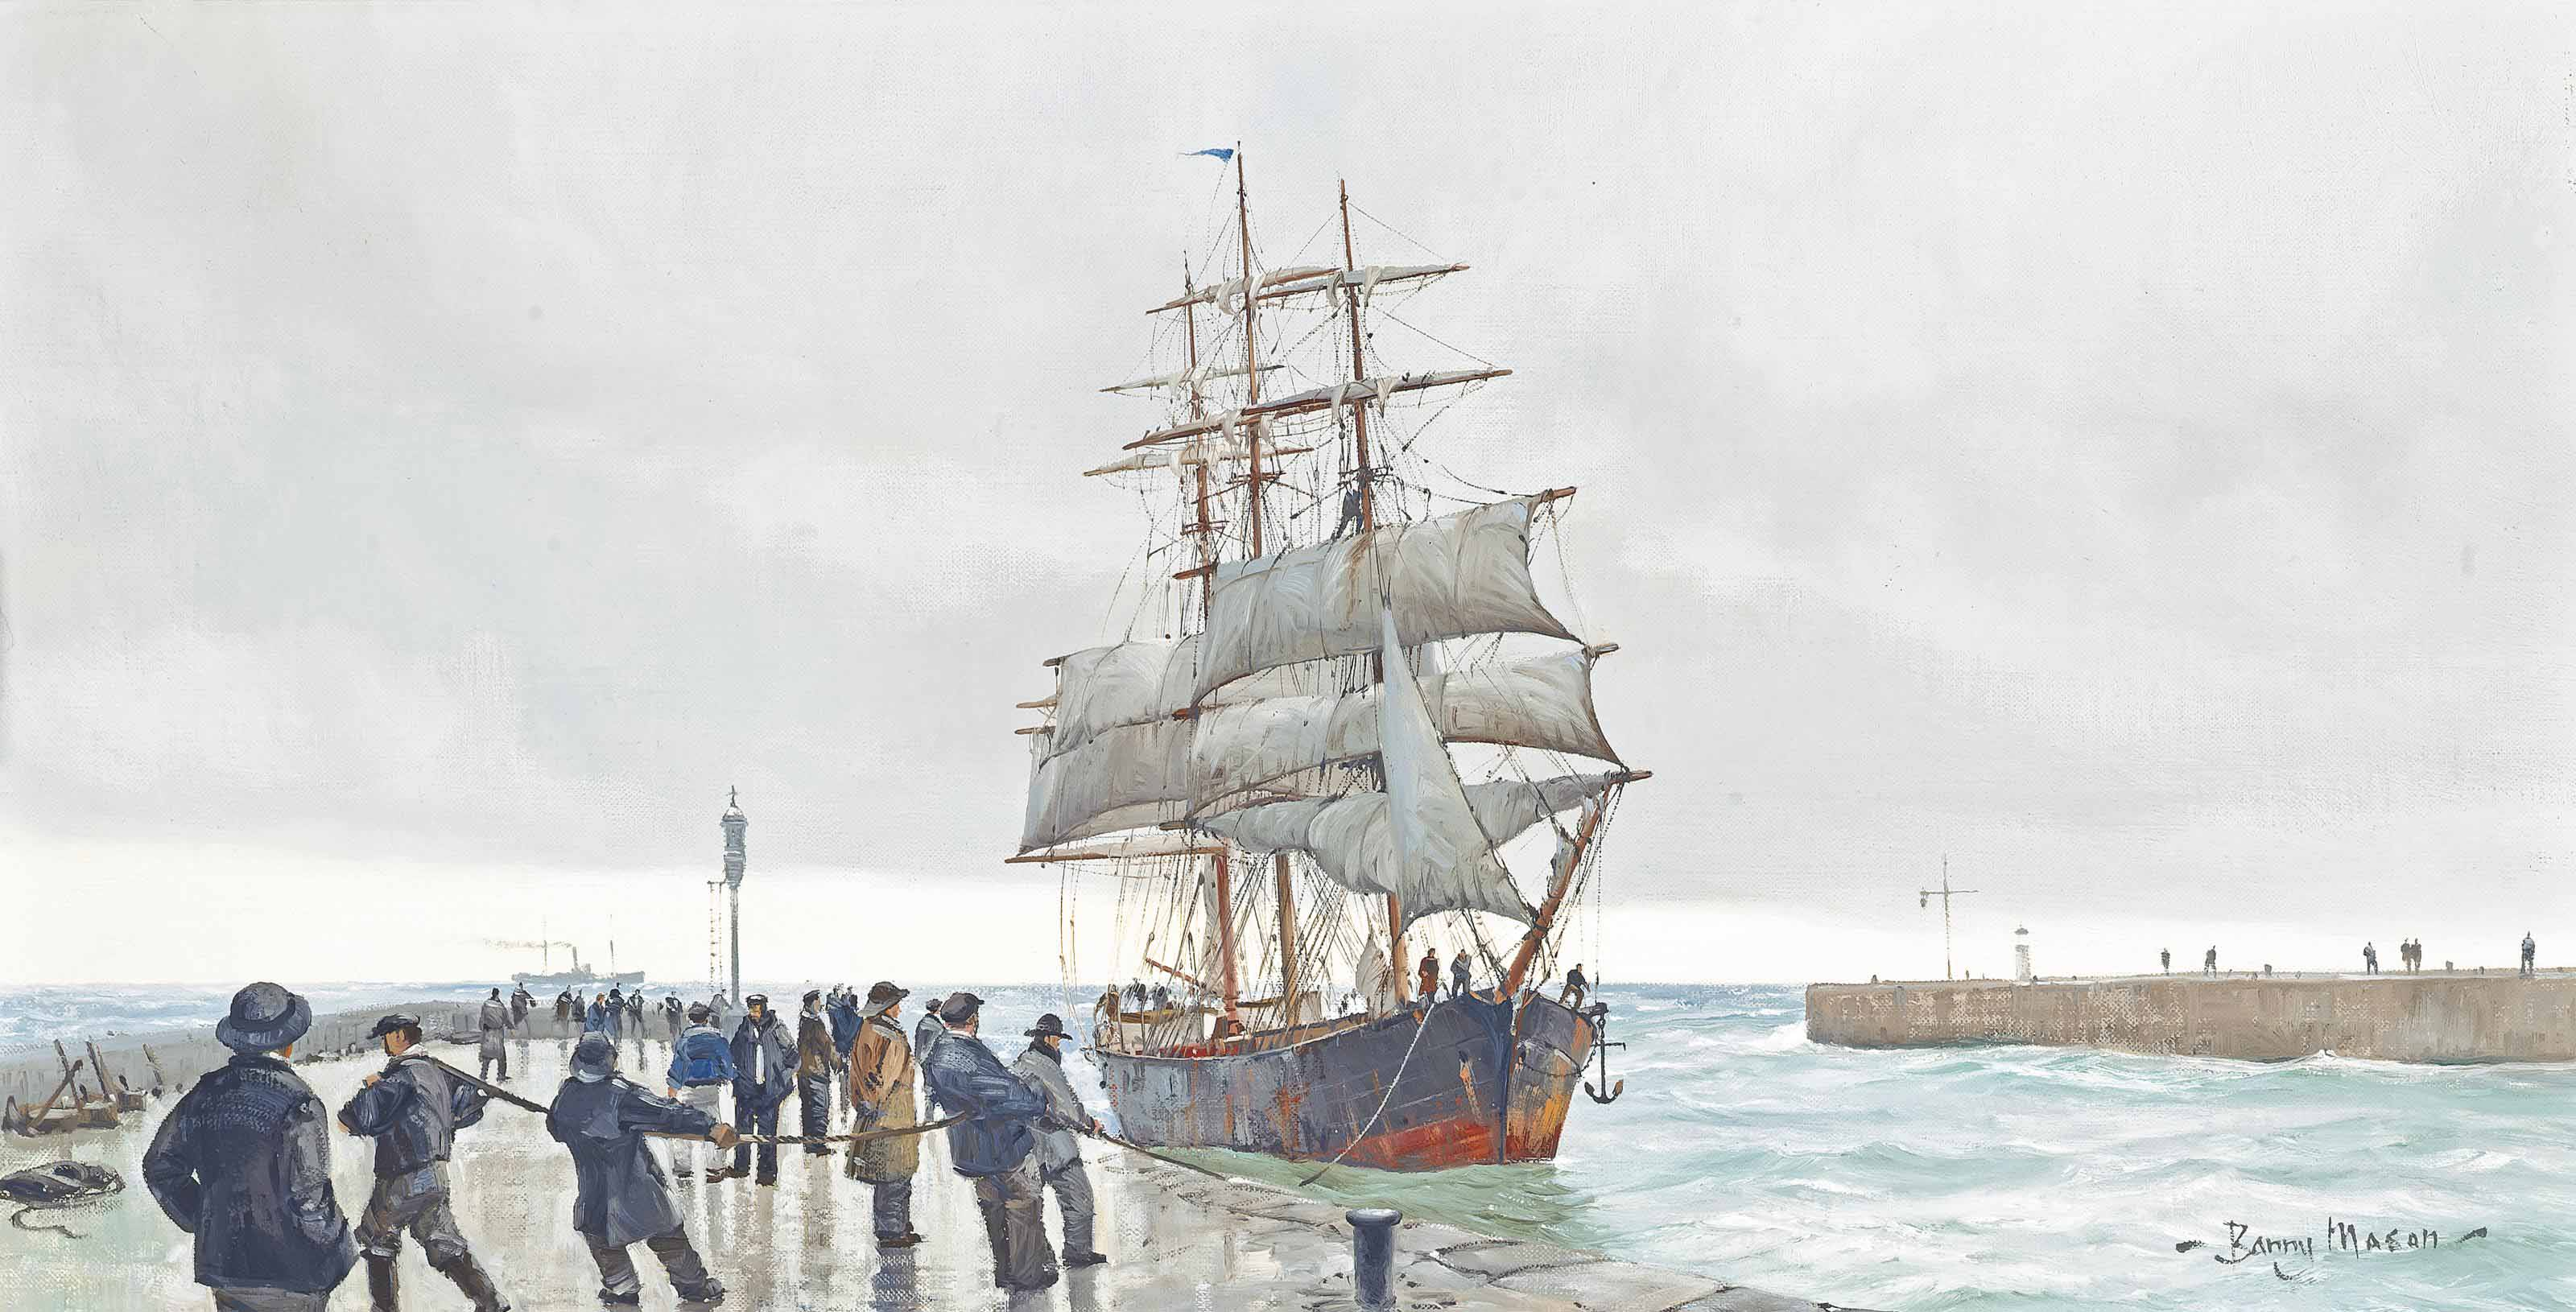 A windjammer limping into port and being pulled alongside the quay